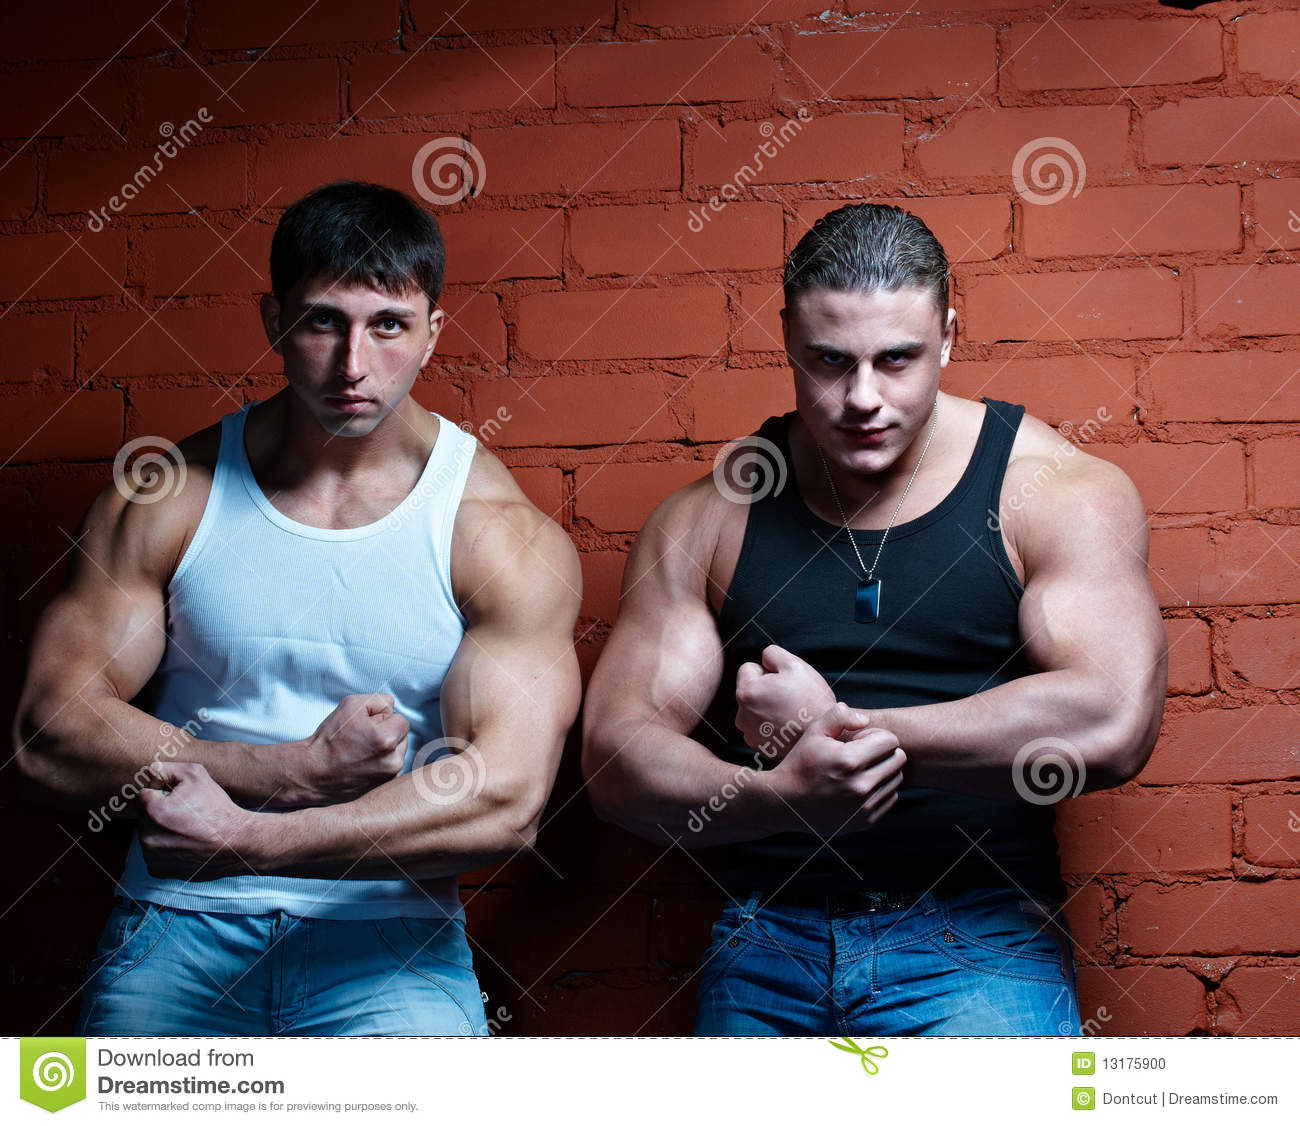 Two missive musclines males